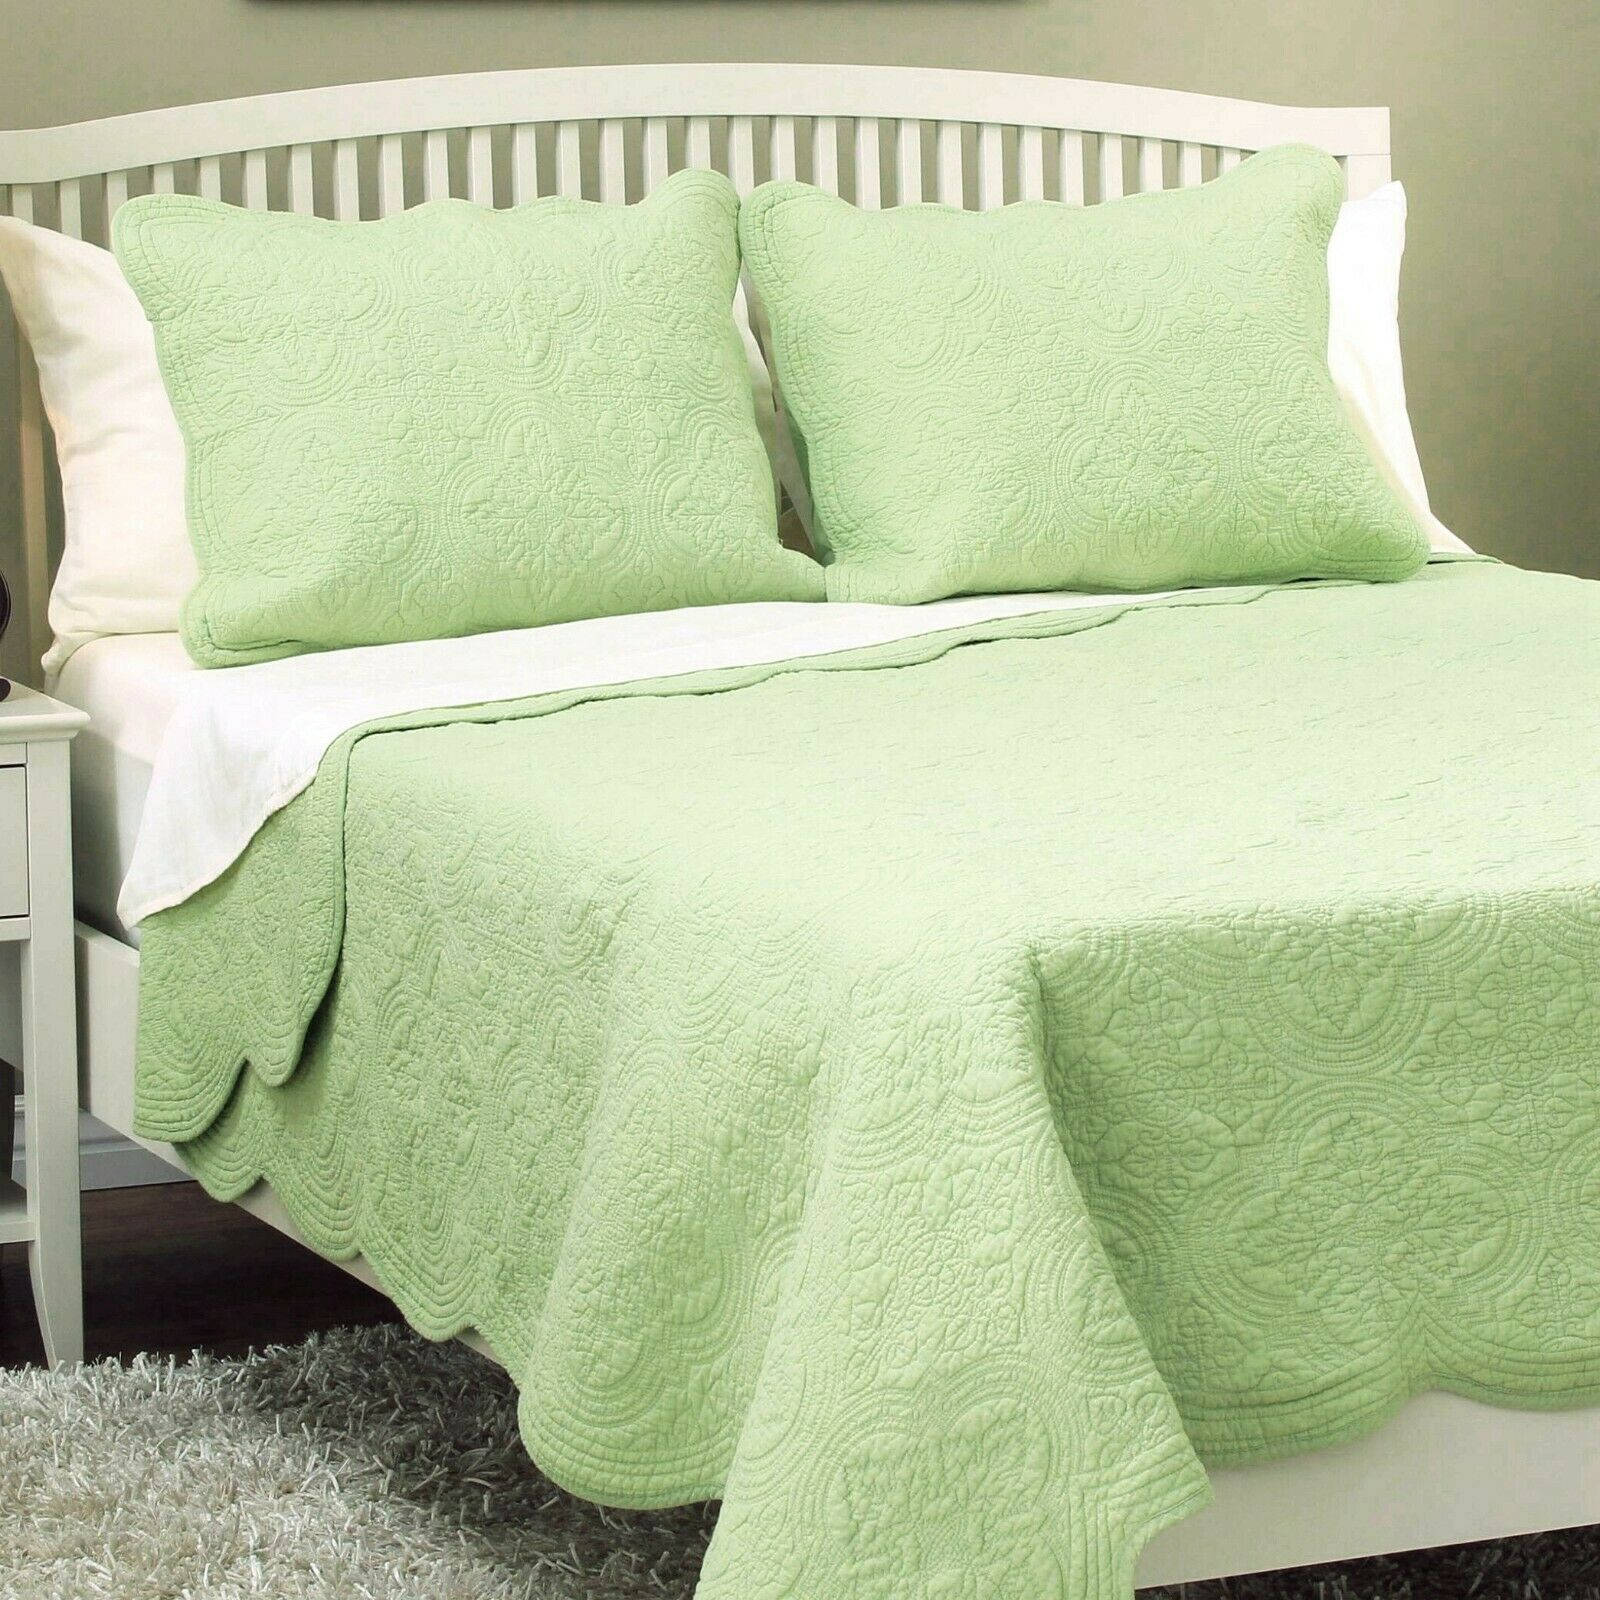 Mael Green Scalloped Edge Reversible Cotton Quilt Set, Bedspreads, Coverlet